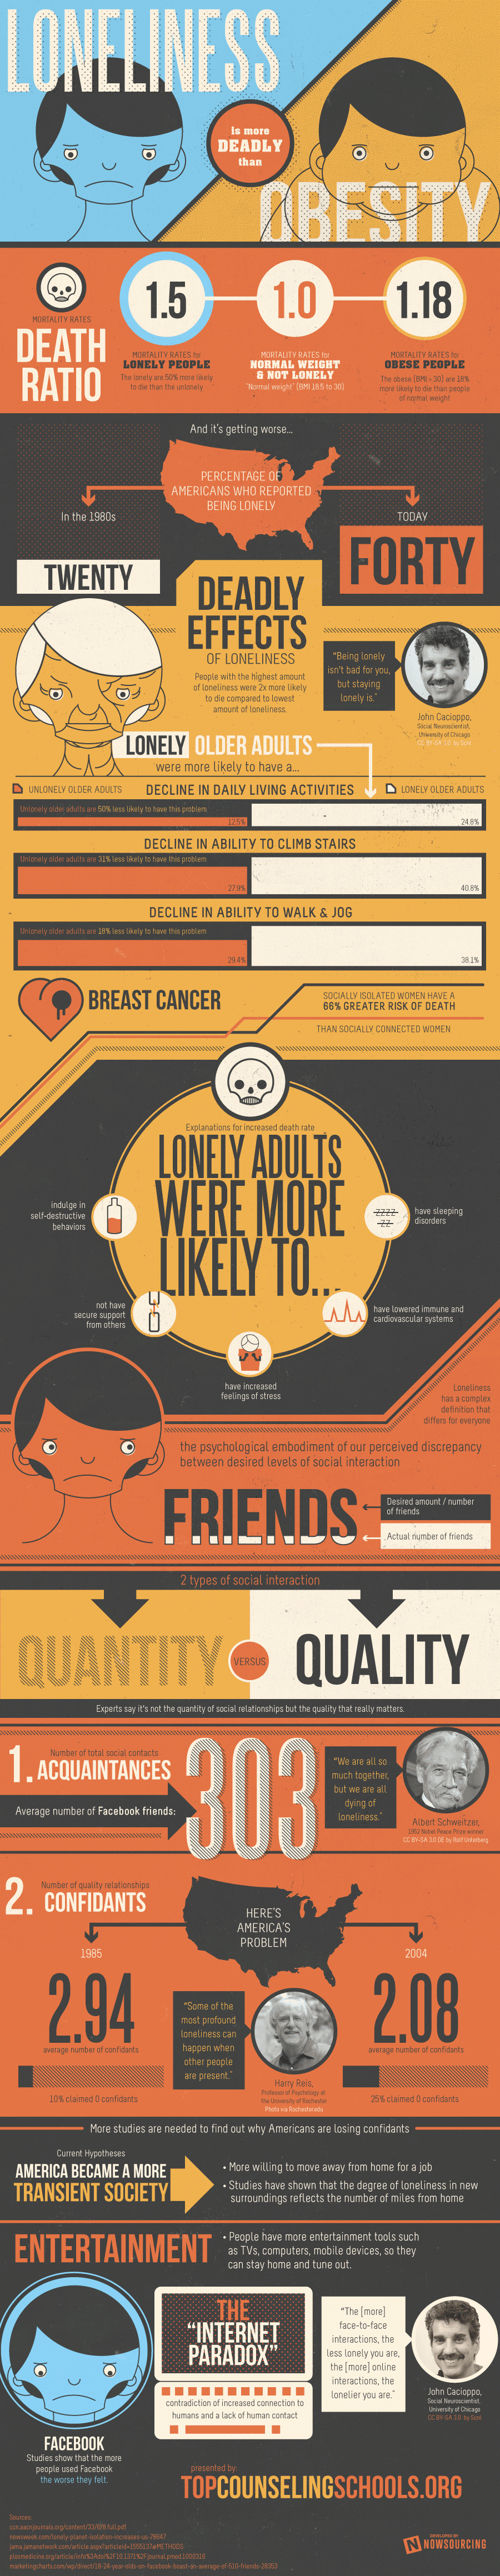 Loneliness vs. Obesity